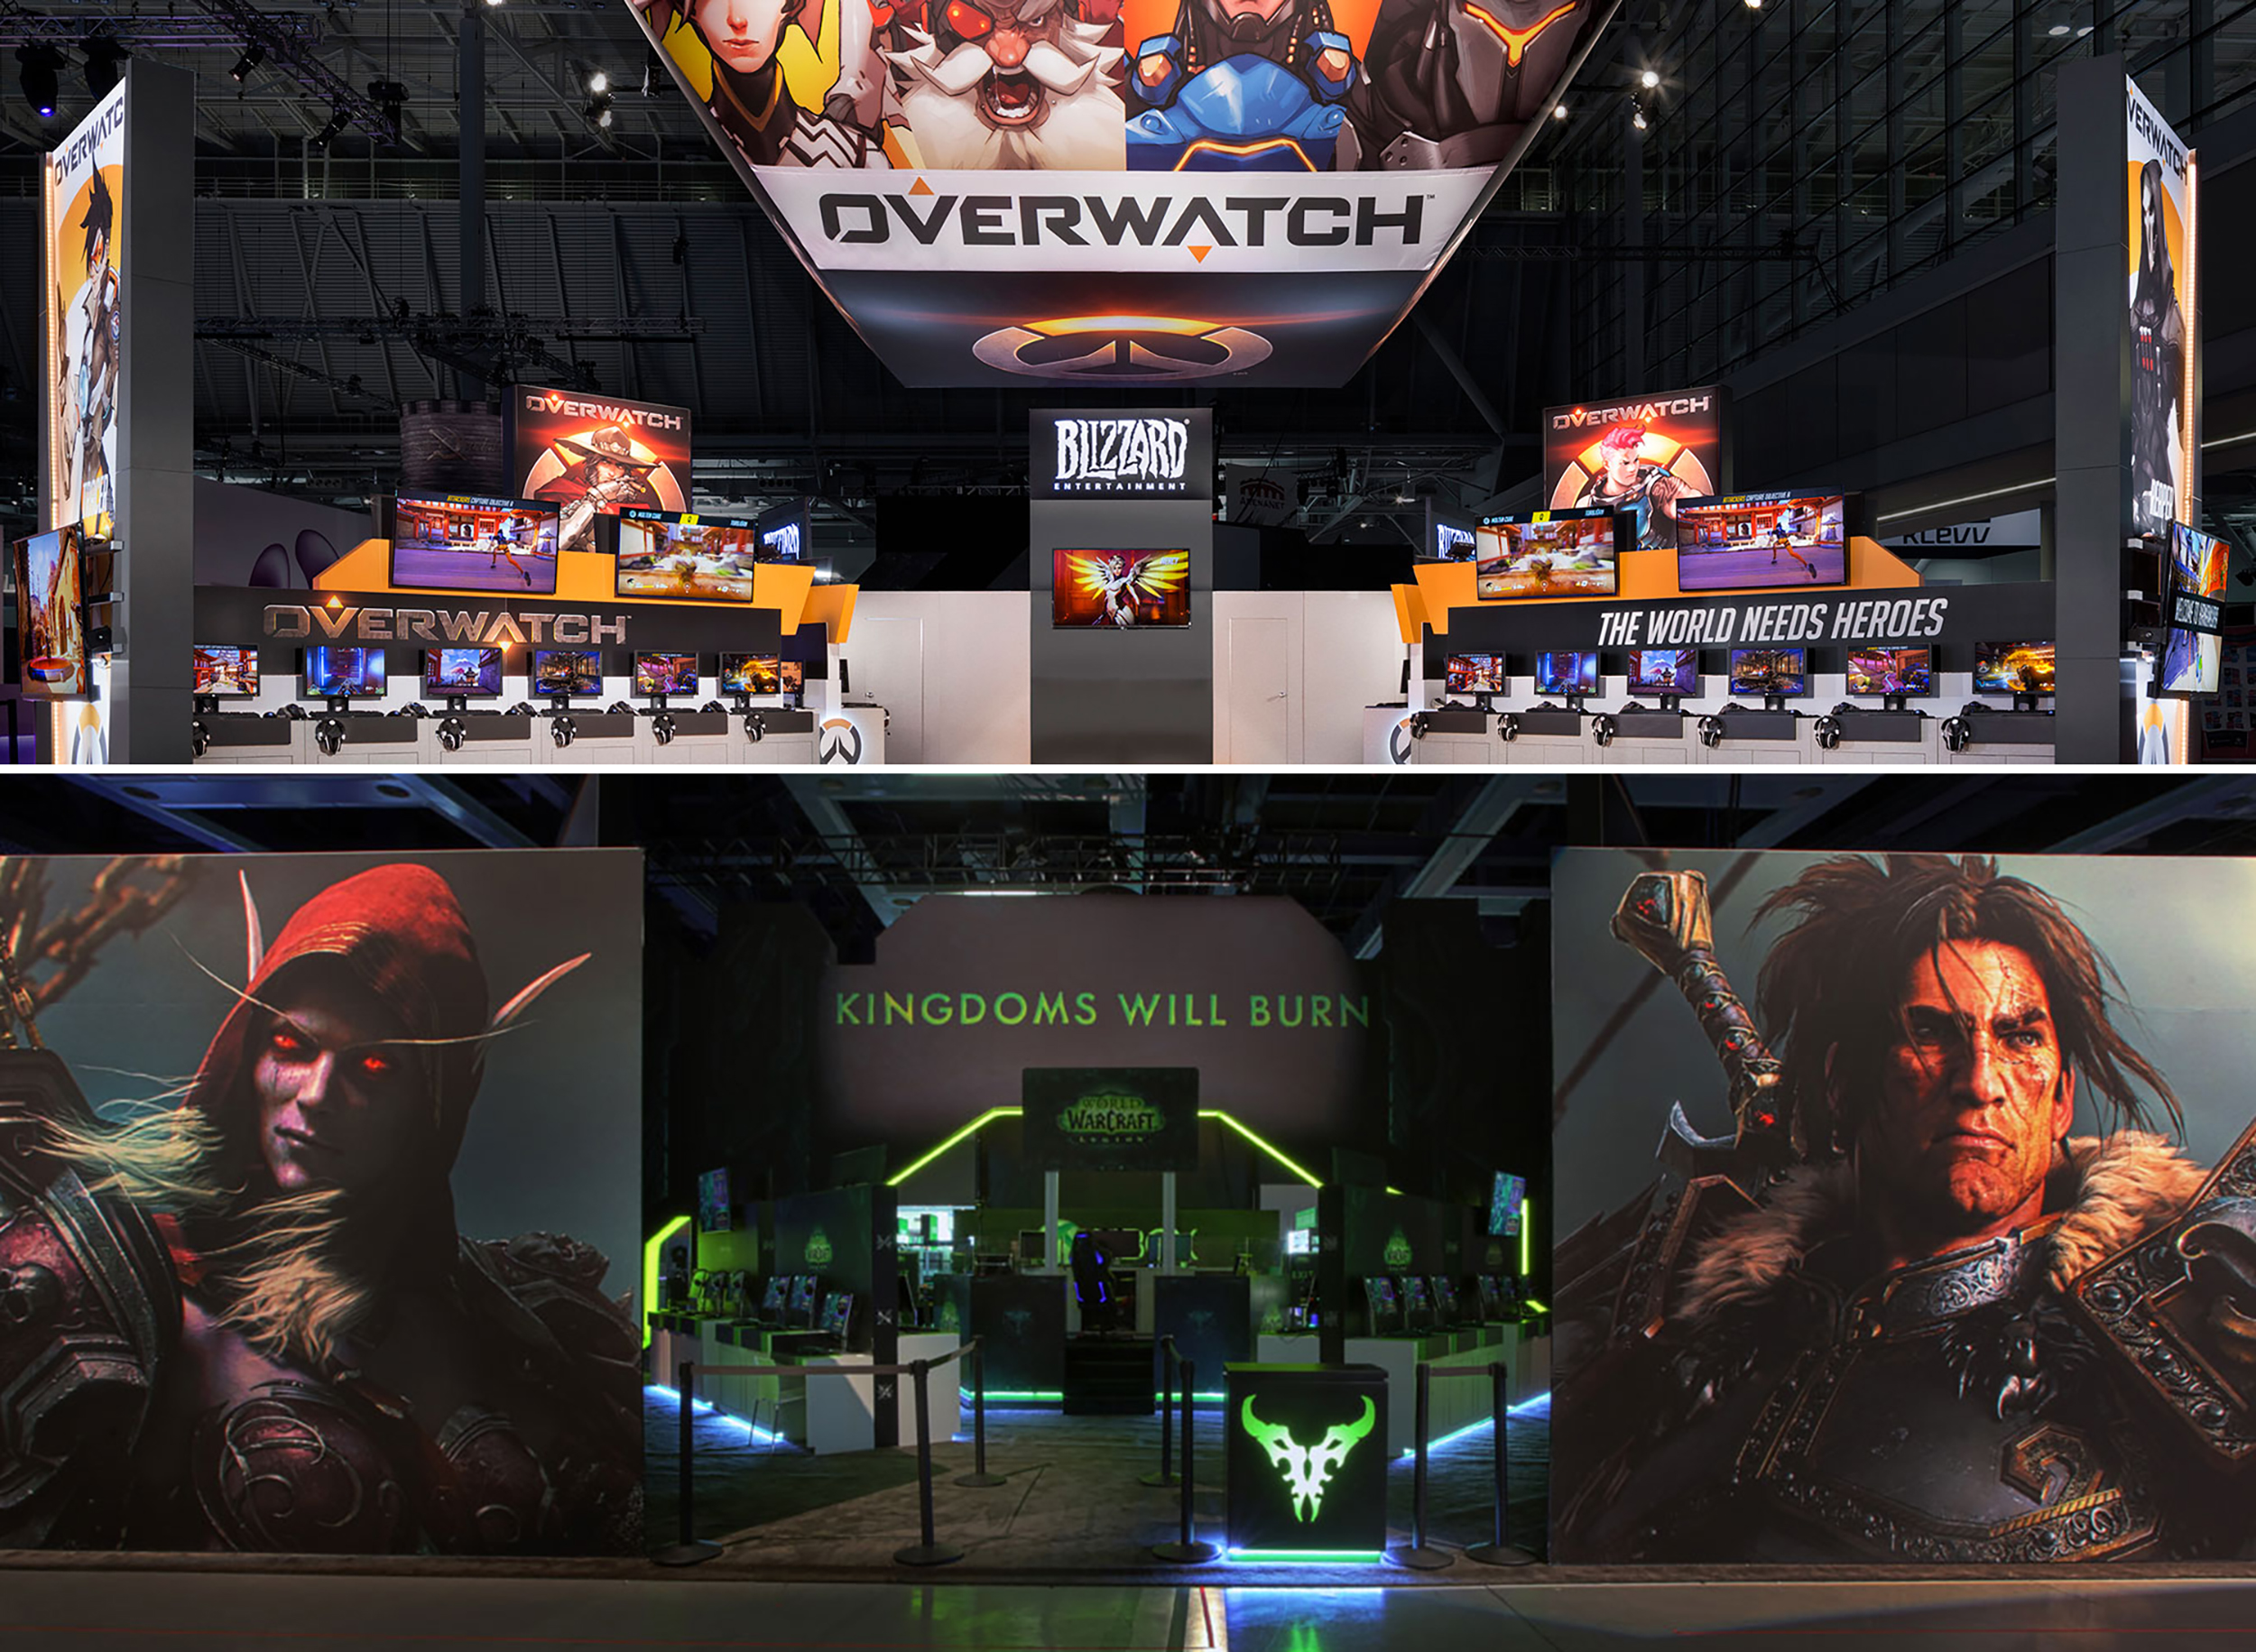 Dye sublimated, tensioned fabric and SEG graphics with florescent inks printed by Olympus Group featured on tradeshow floors.